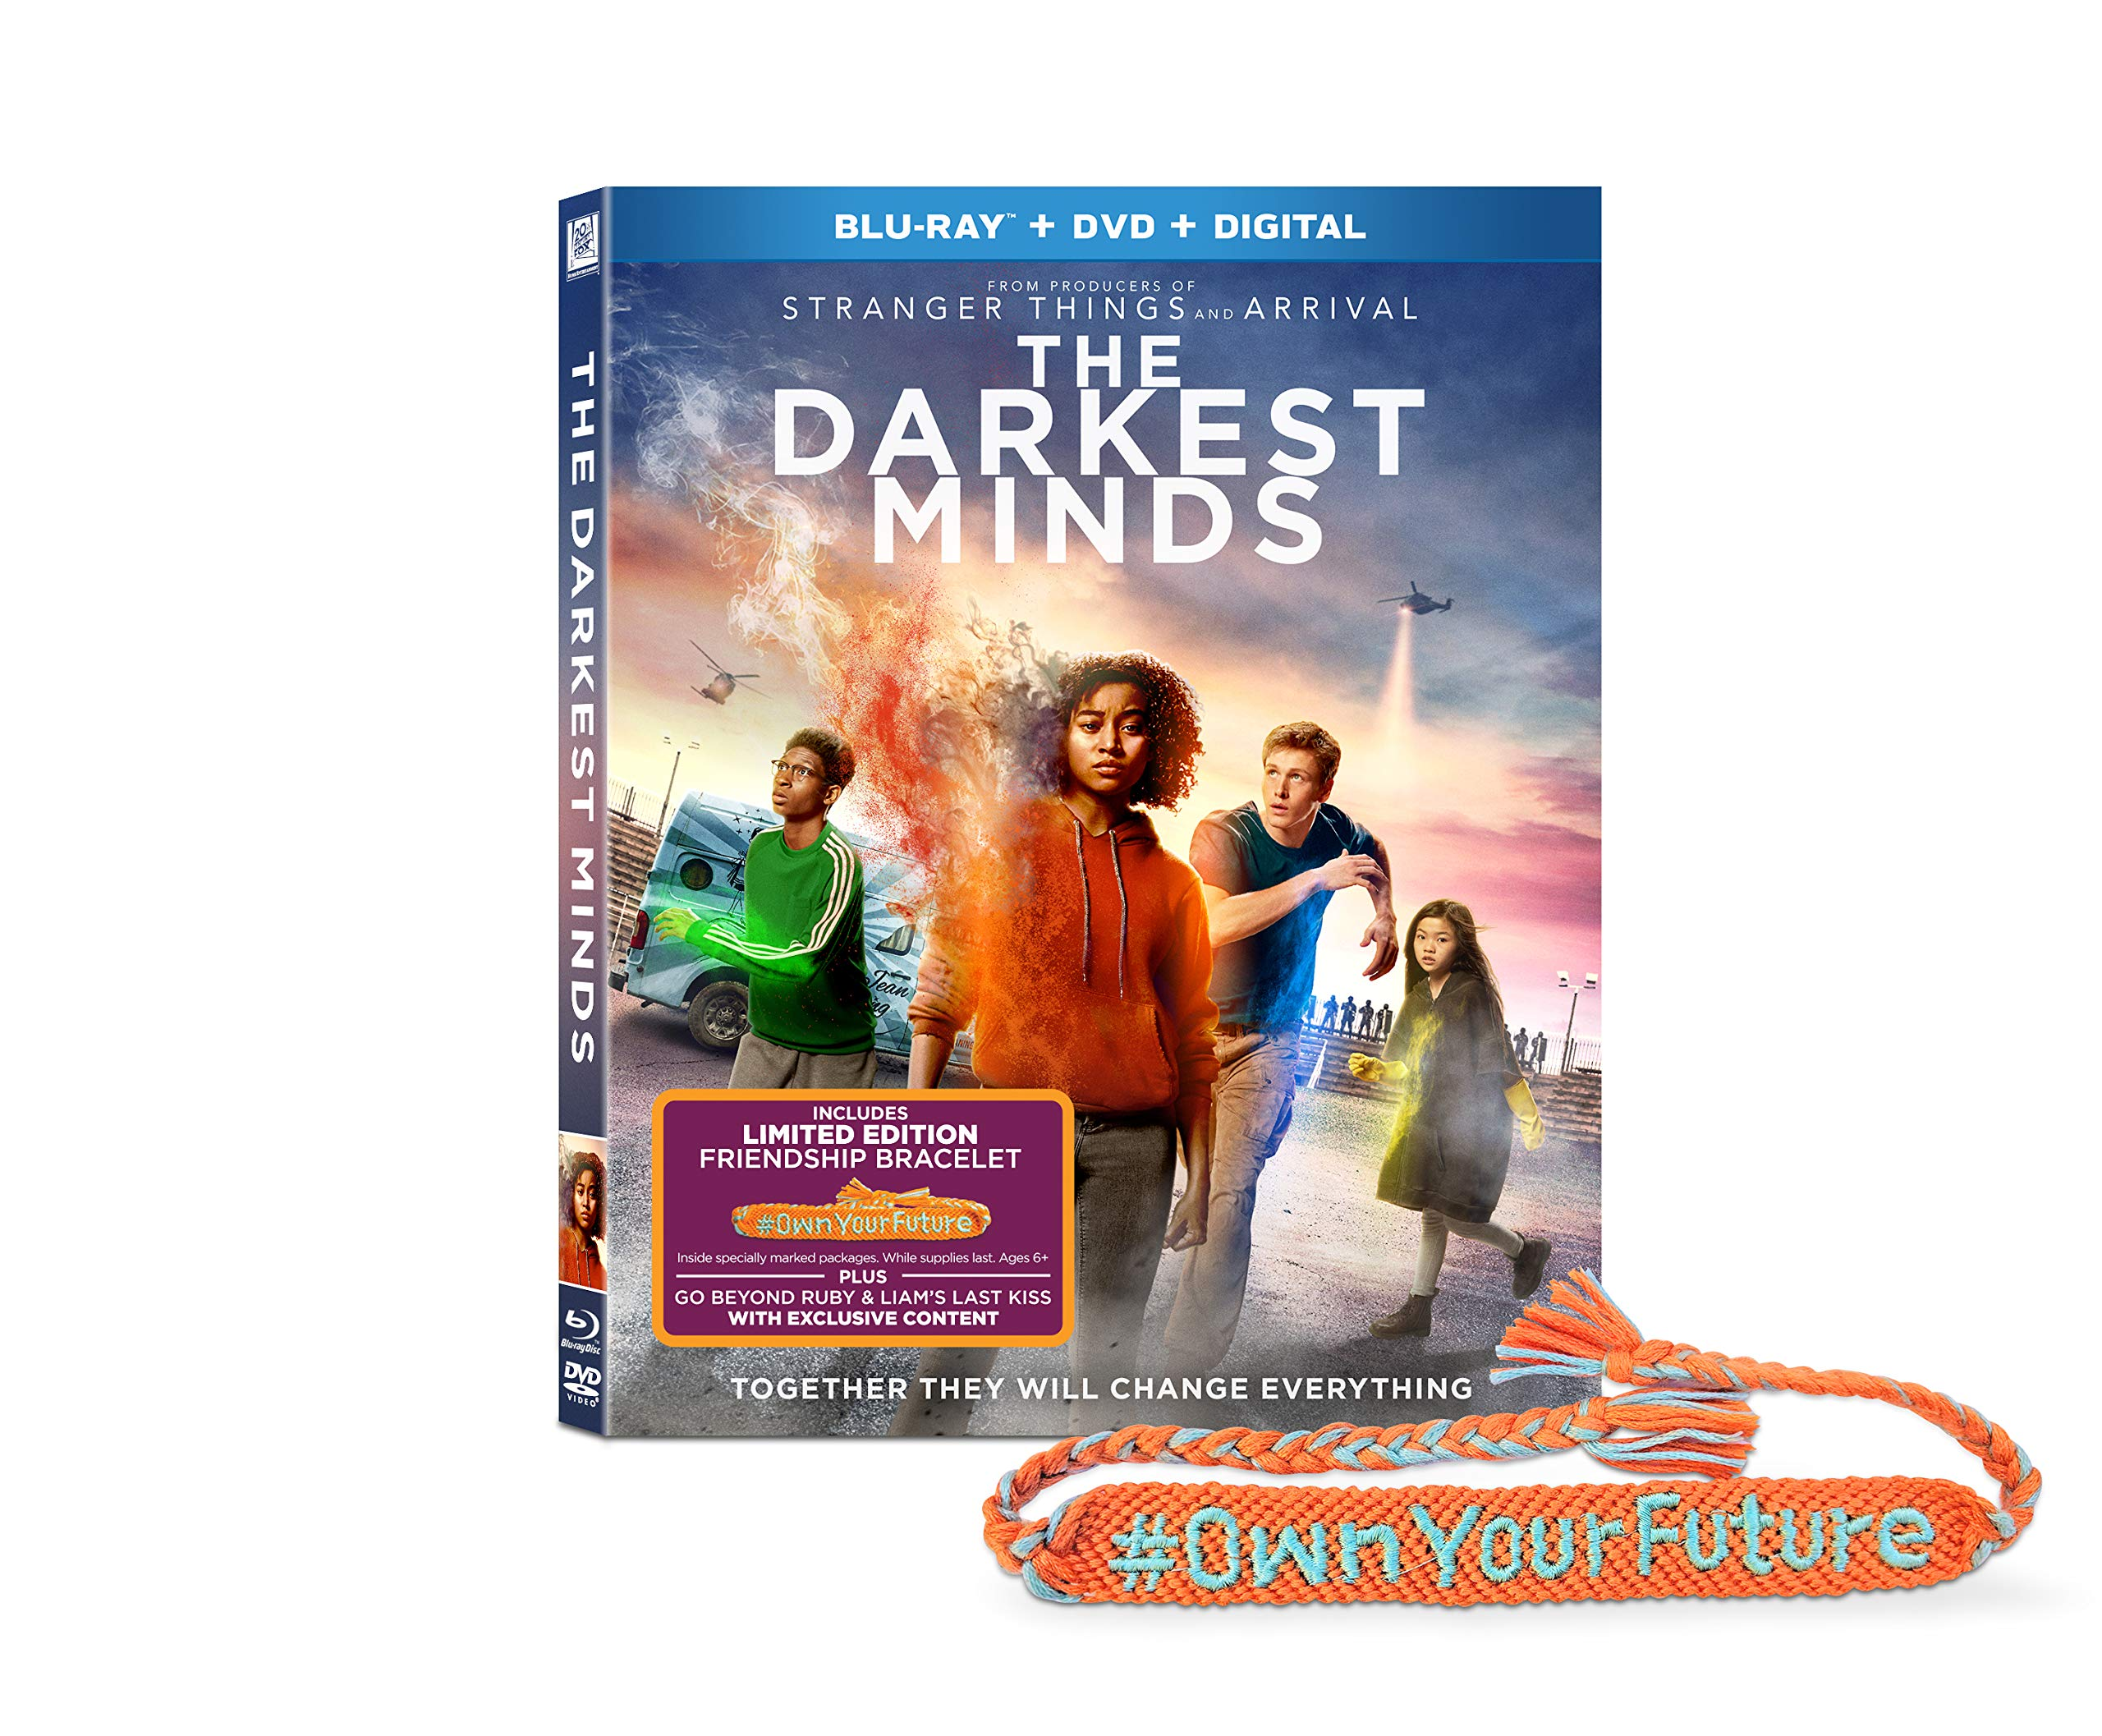 Blu-ray : Darkest Minds (With DVD, Gift with Purchase, Digital Copy)